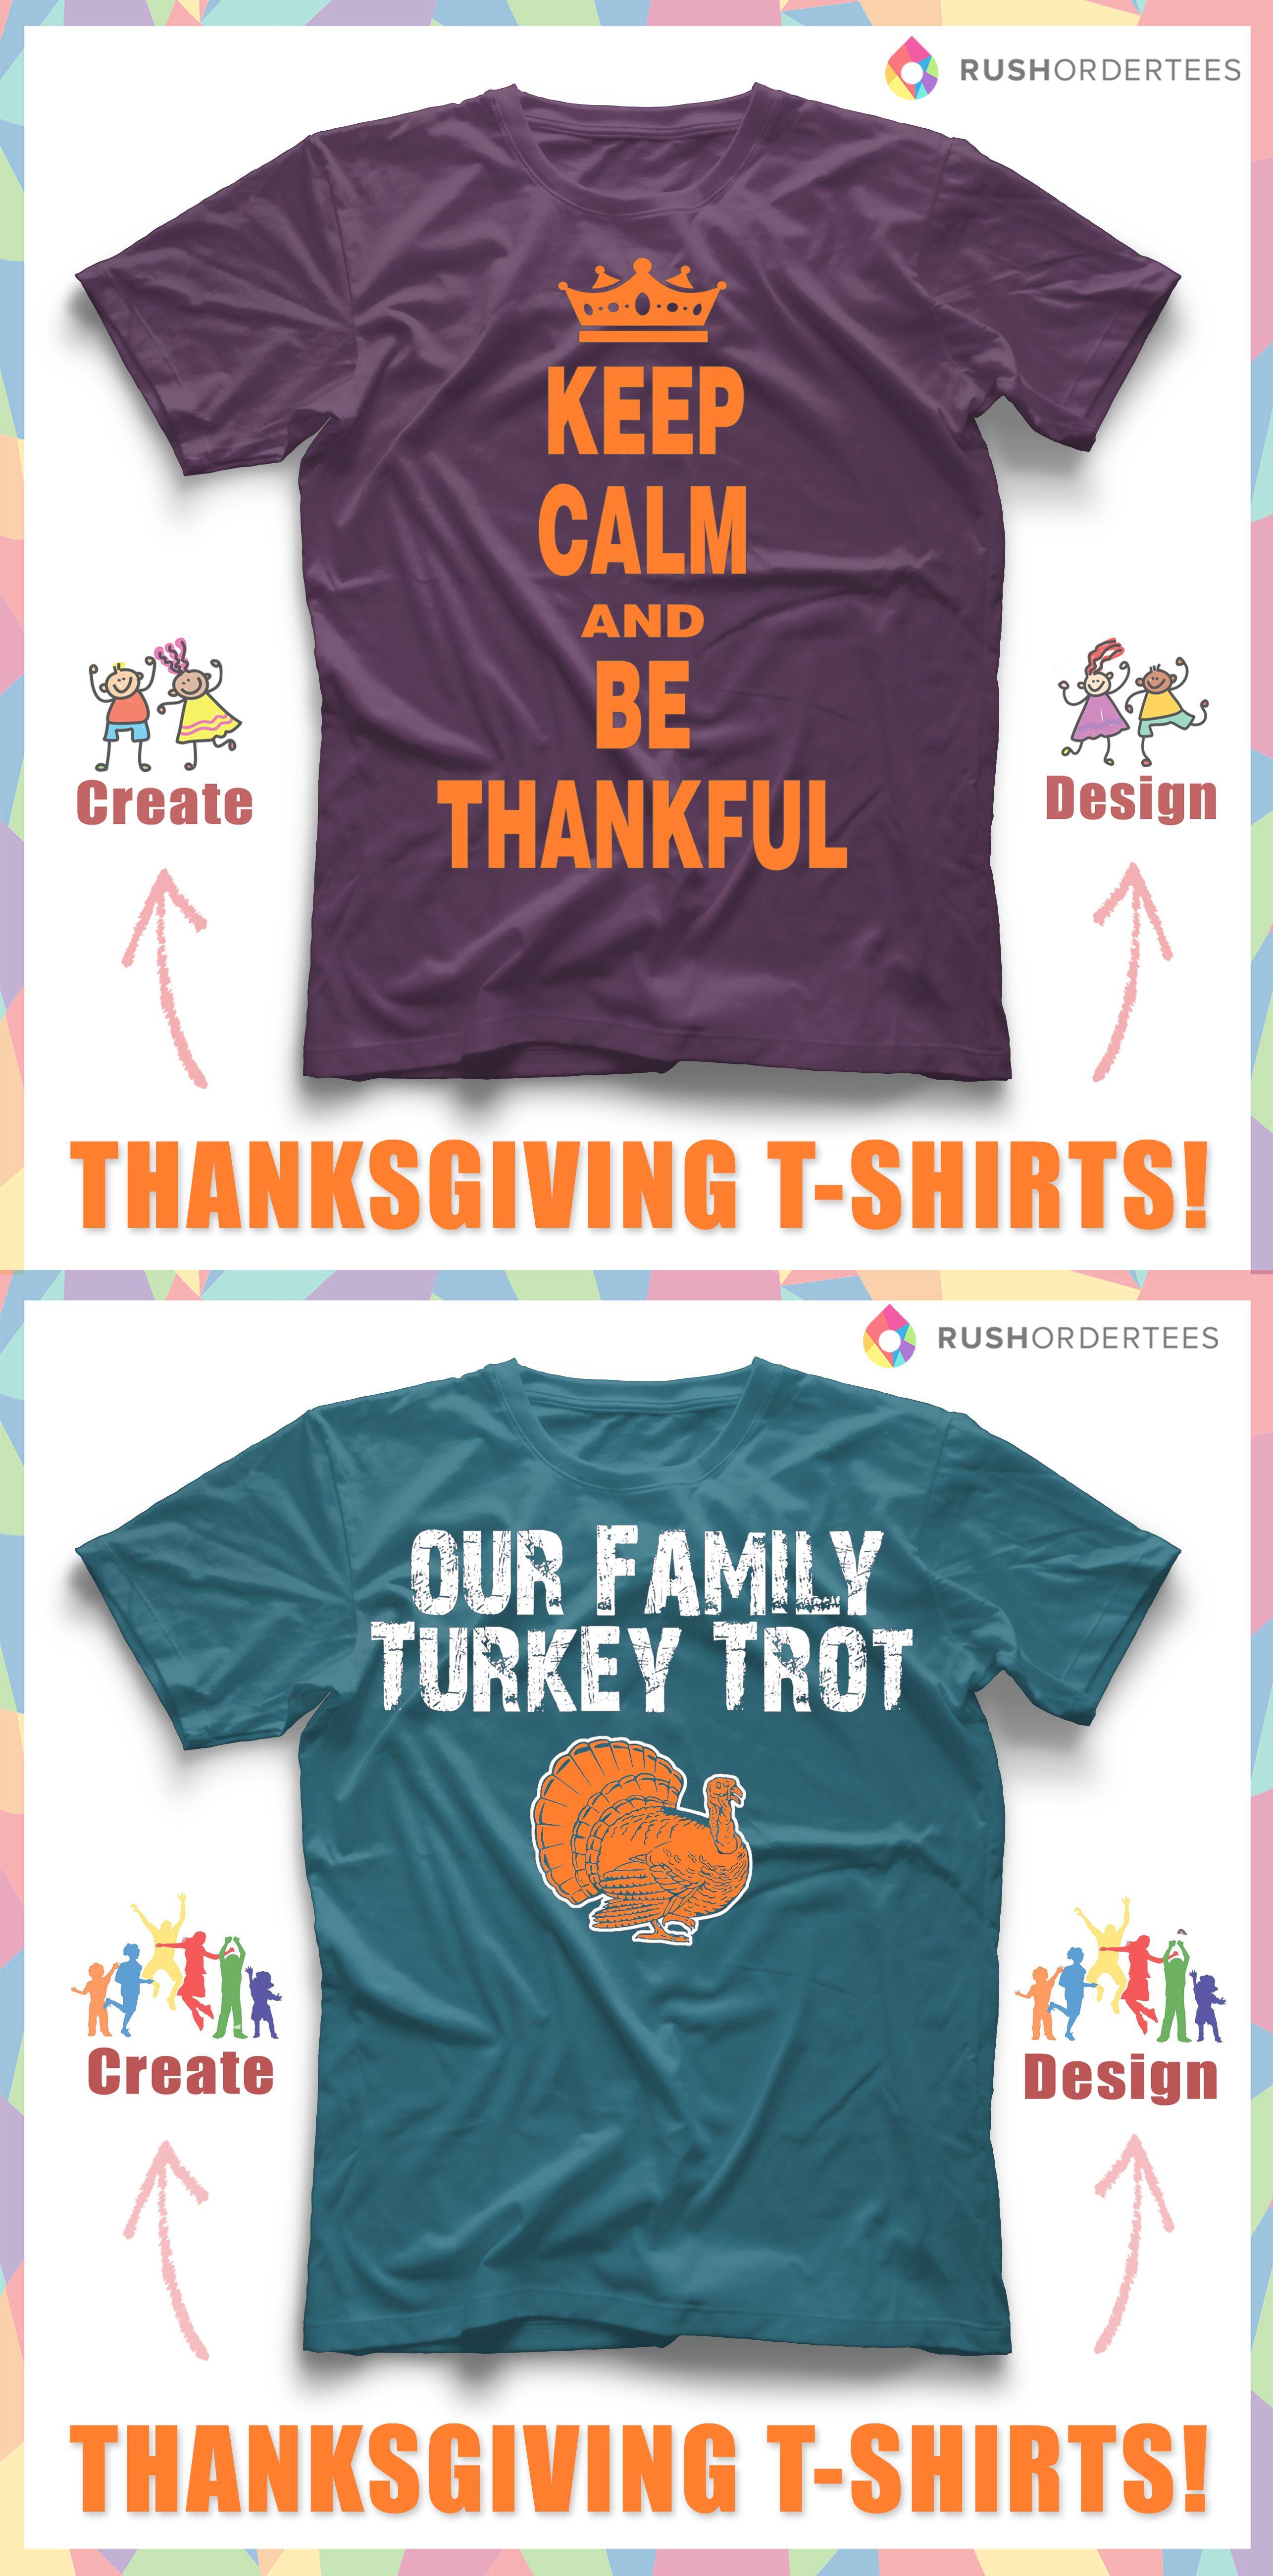 0fb97be96fec Keep Calm and Be Thankful! Our Family Turkey Trot T-Shirt. Create and  design custom t-shirts for your Thanksgiving Day! www.rushordertees.com